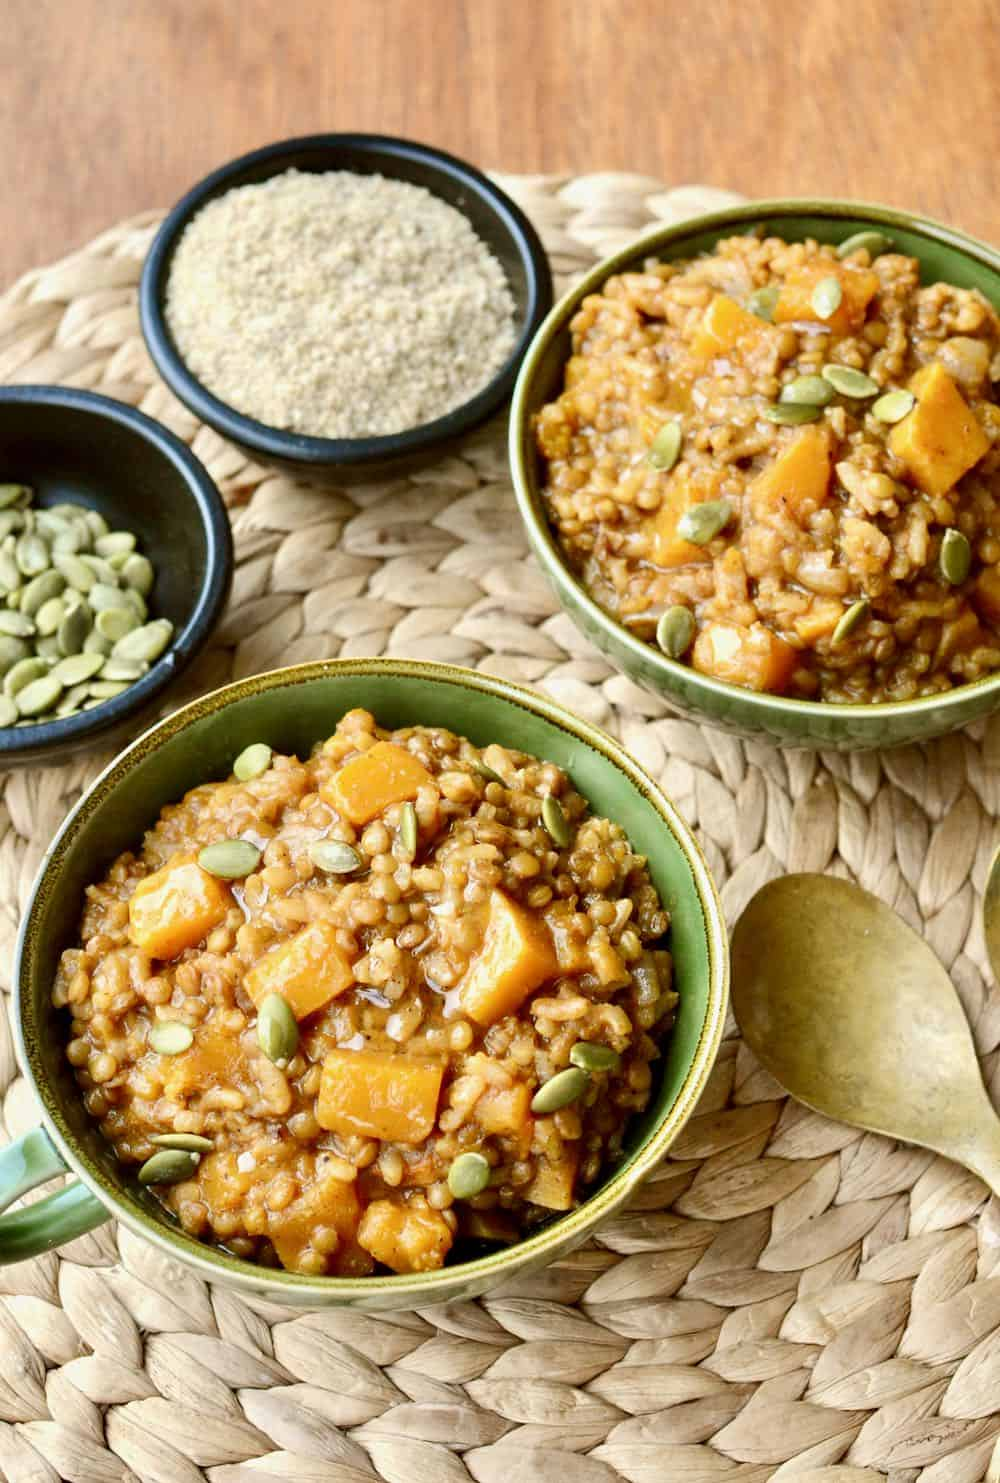 Two bowls filled with a creamy and earthy looking risotto